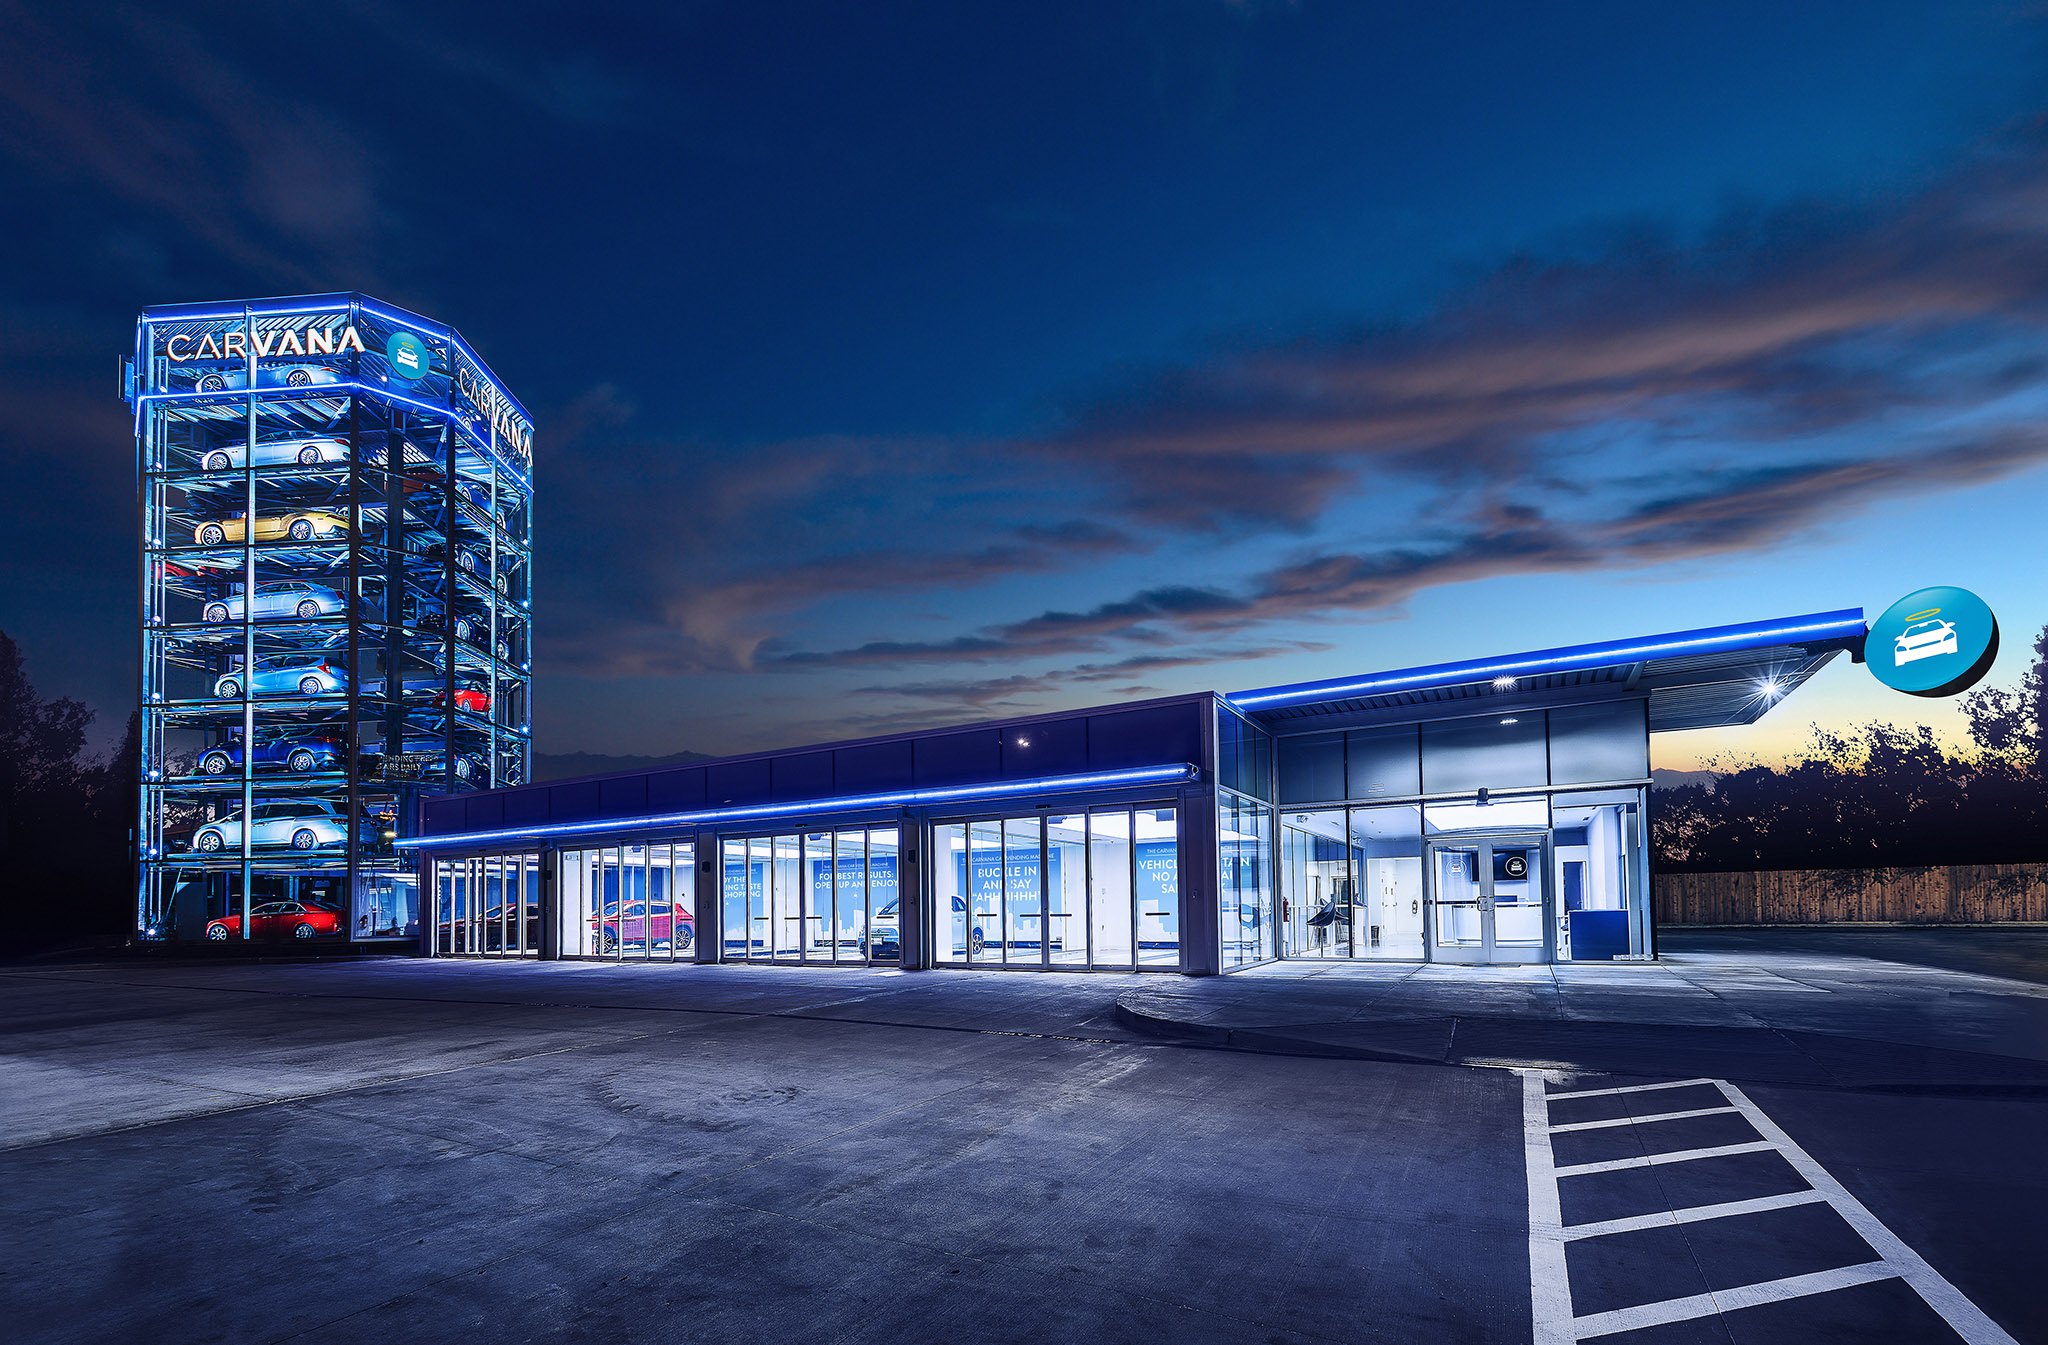 Carvana-of-San-Antonio-Texas